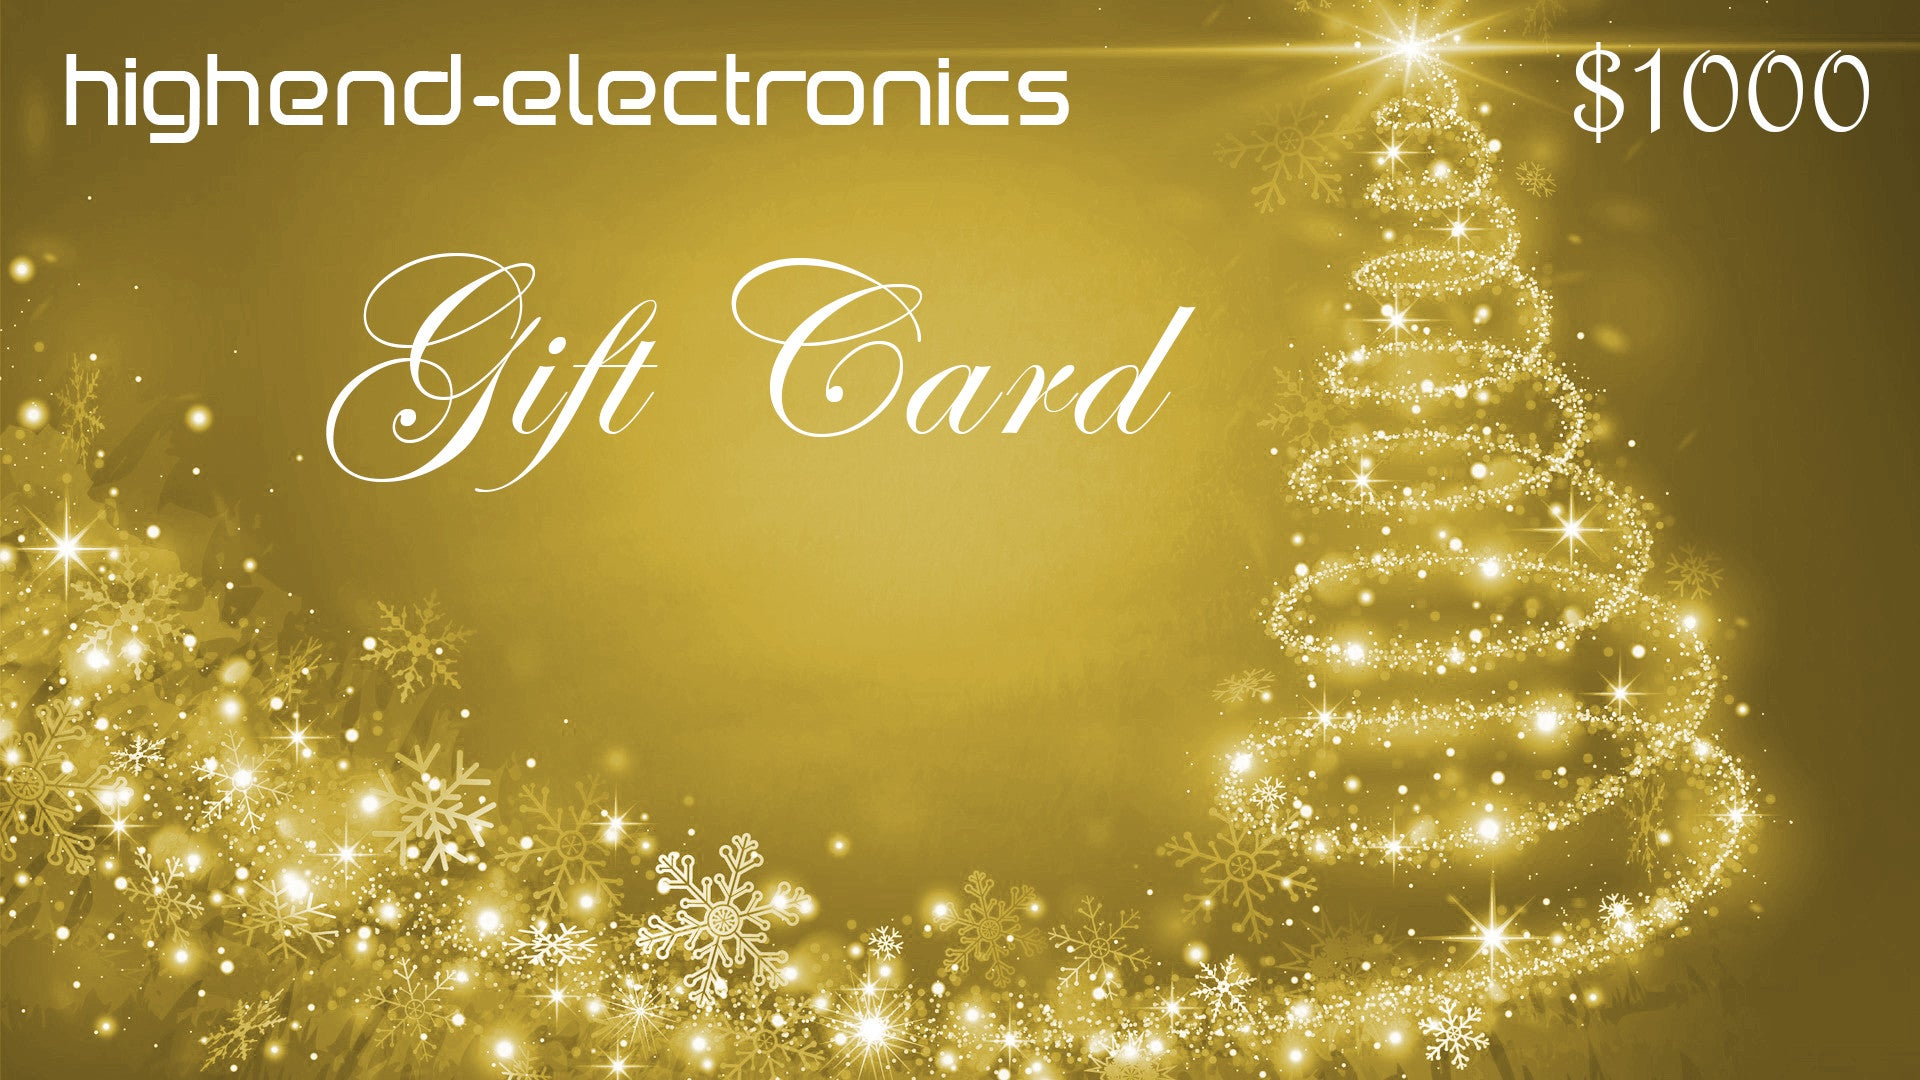 Gift Cards | highend-electronics, inc.